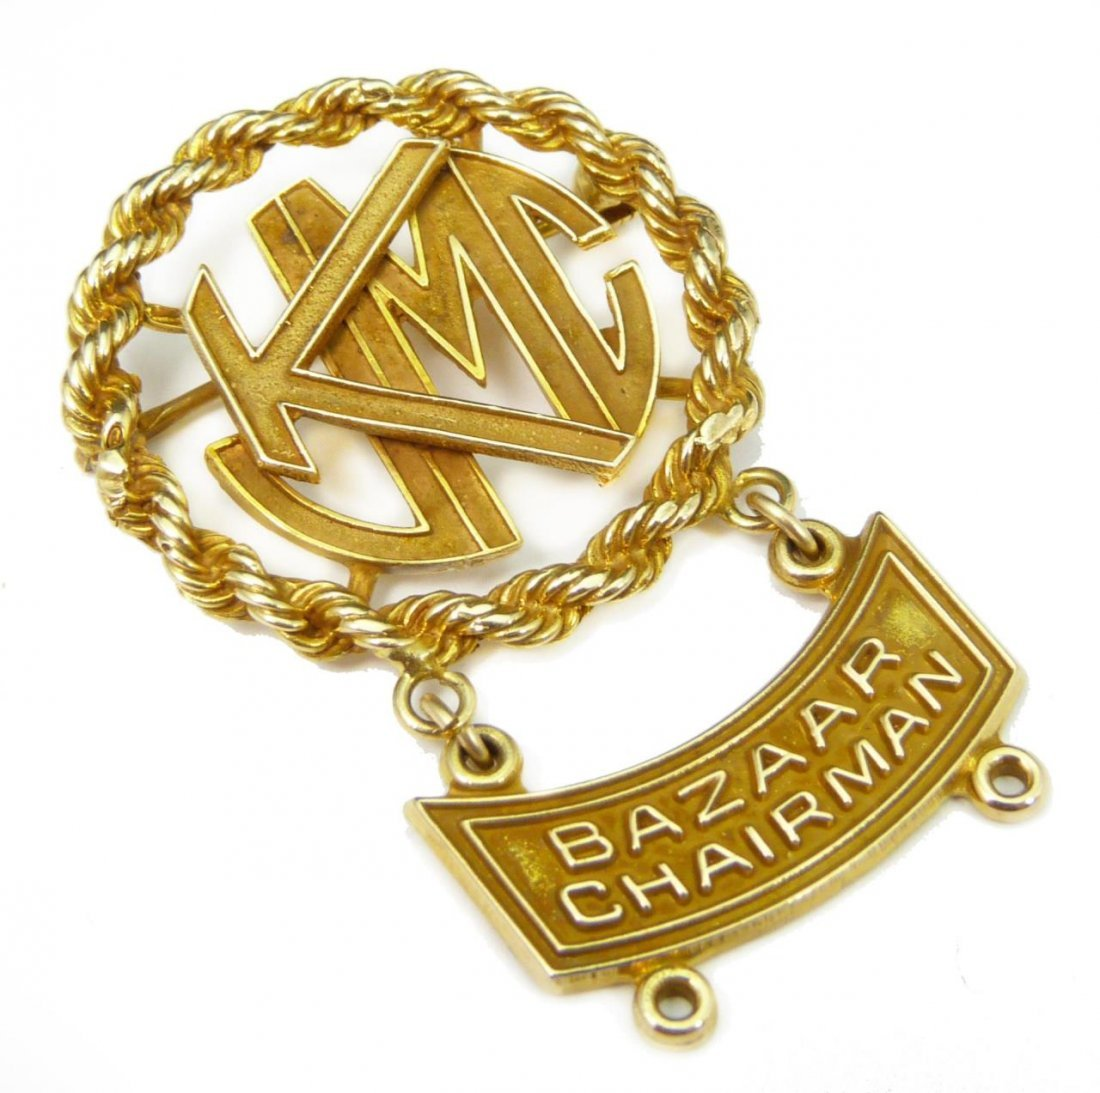 14K YG JEWISH MEDICAL CENTER BAZAAR CHAIRMAN PIN